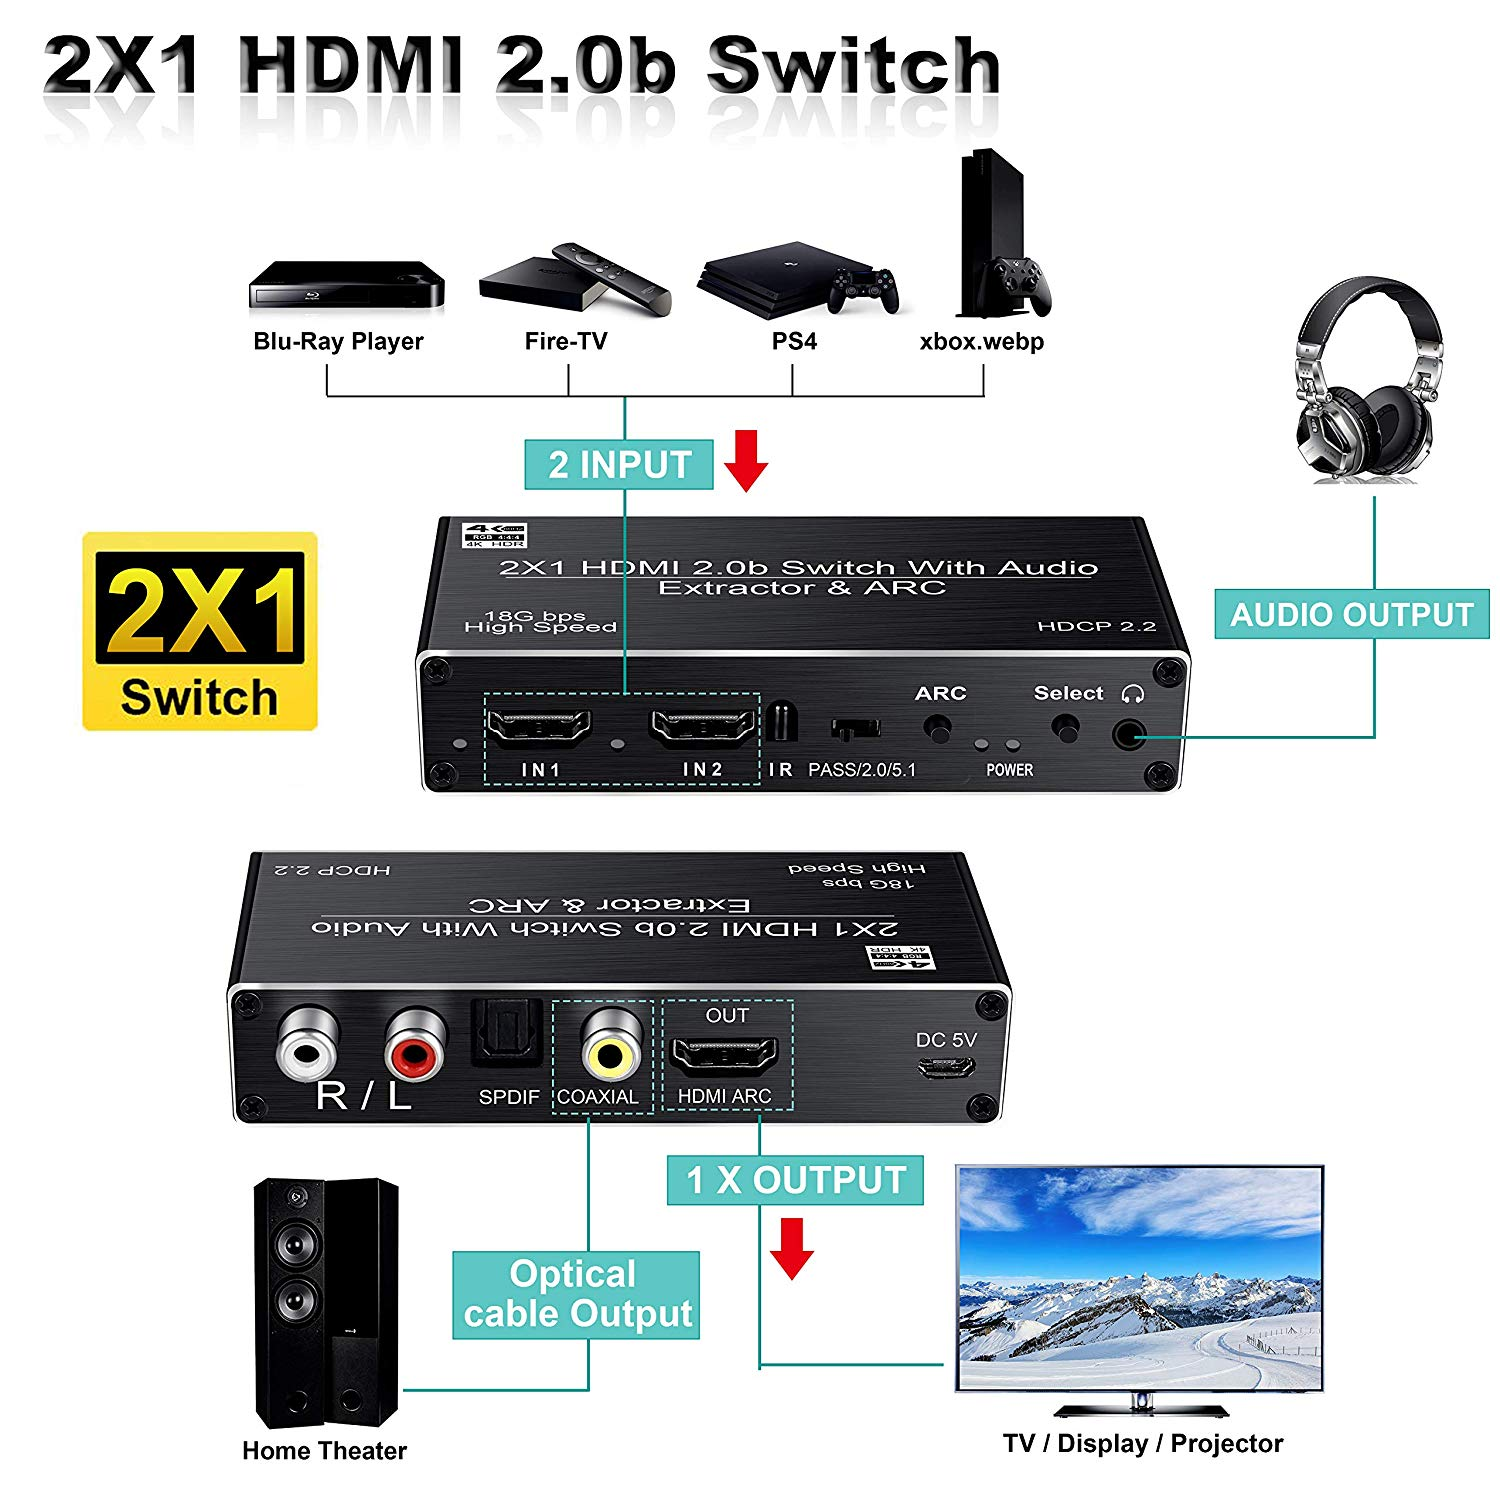 2-Port HDMI2.0b Selector Switcher with Optical Toslink SPDIF+Coaxial+Analog RCA Stereo Audio Out,Support ARC HDCP 2.2 avedio links HDMI Switch 2 in 1 Out 4K@60hz HDMI Switch Audio Extractor